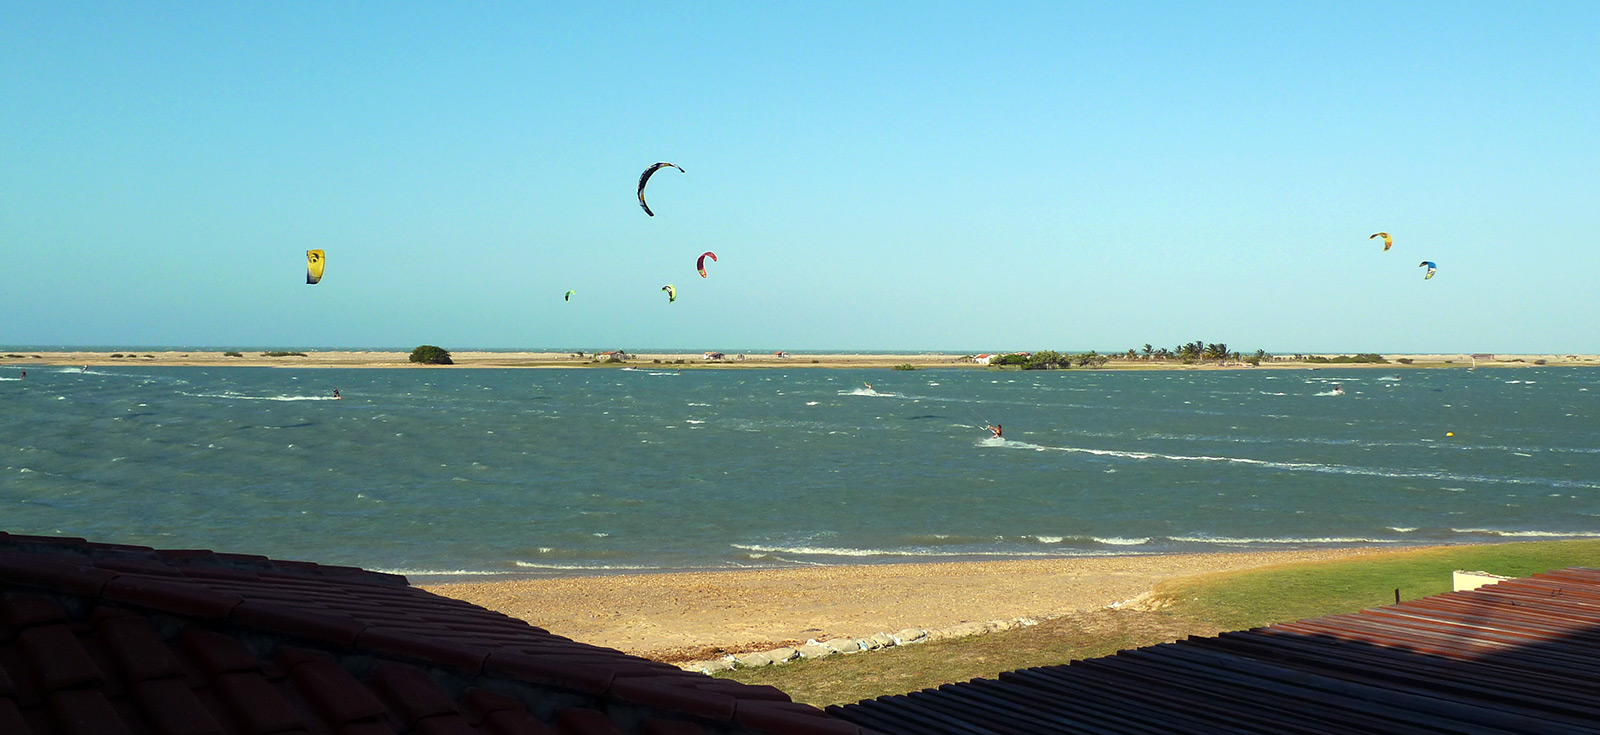 Ilha do Guajiru kite lagoon